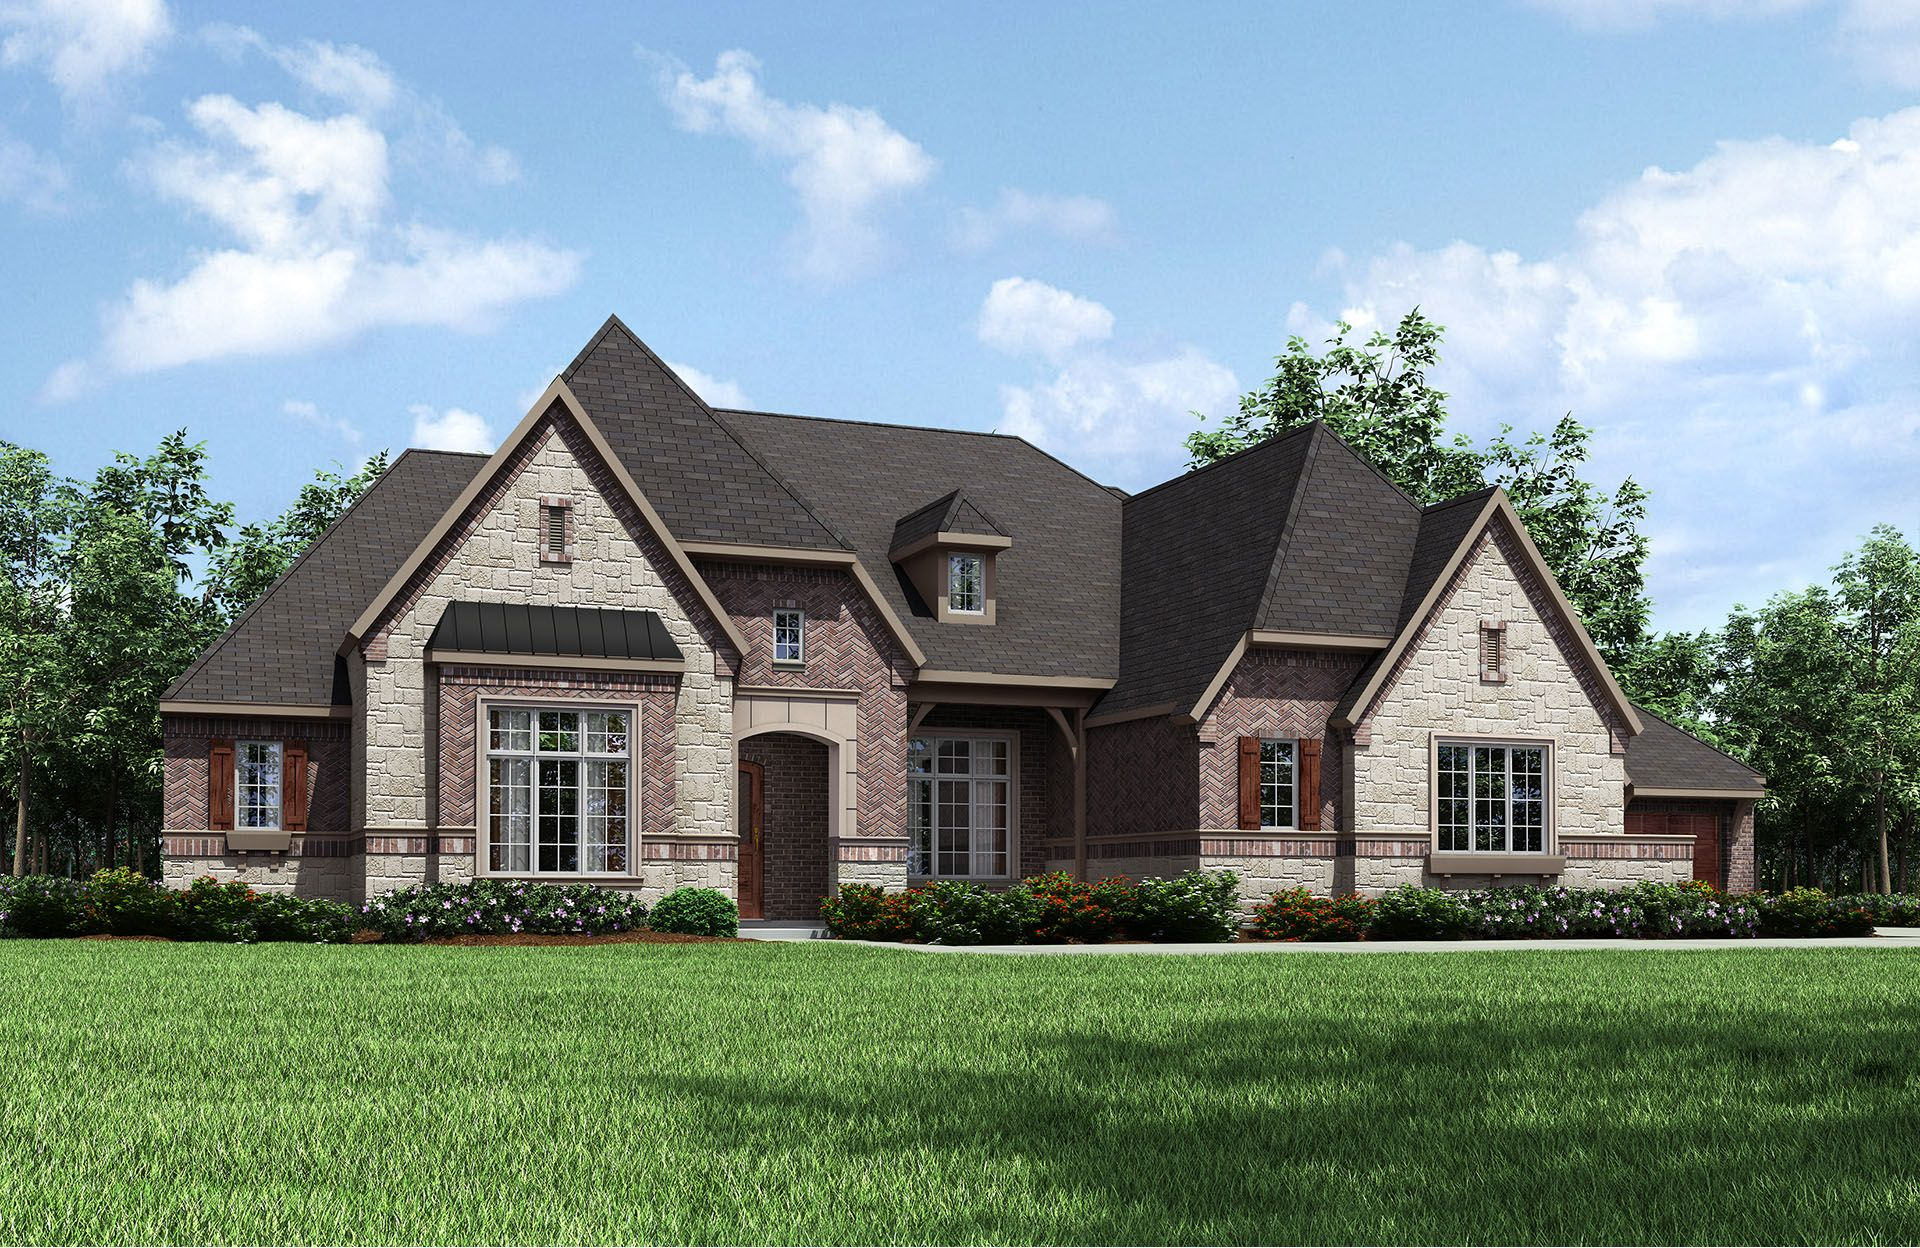 Single Family for Sale at Breezy Hill - Julian 795 Featherstone Rockwall, Texas 75087 United States